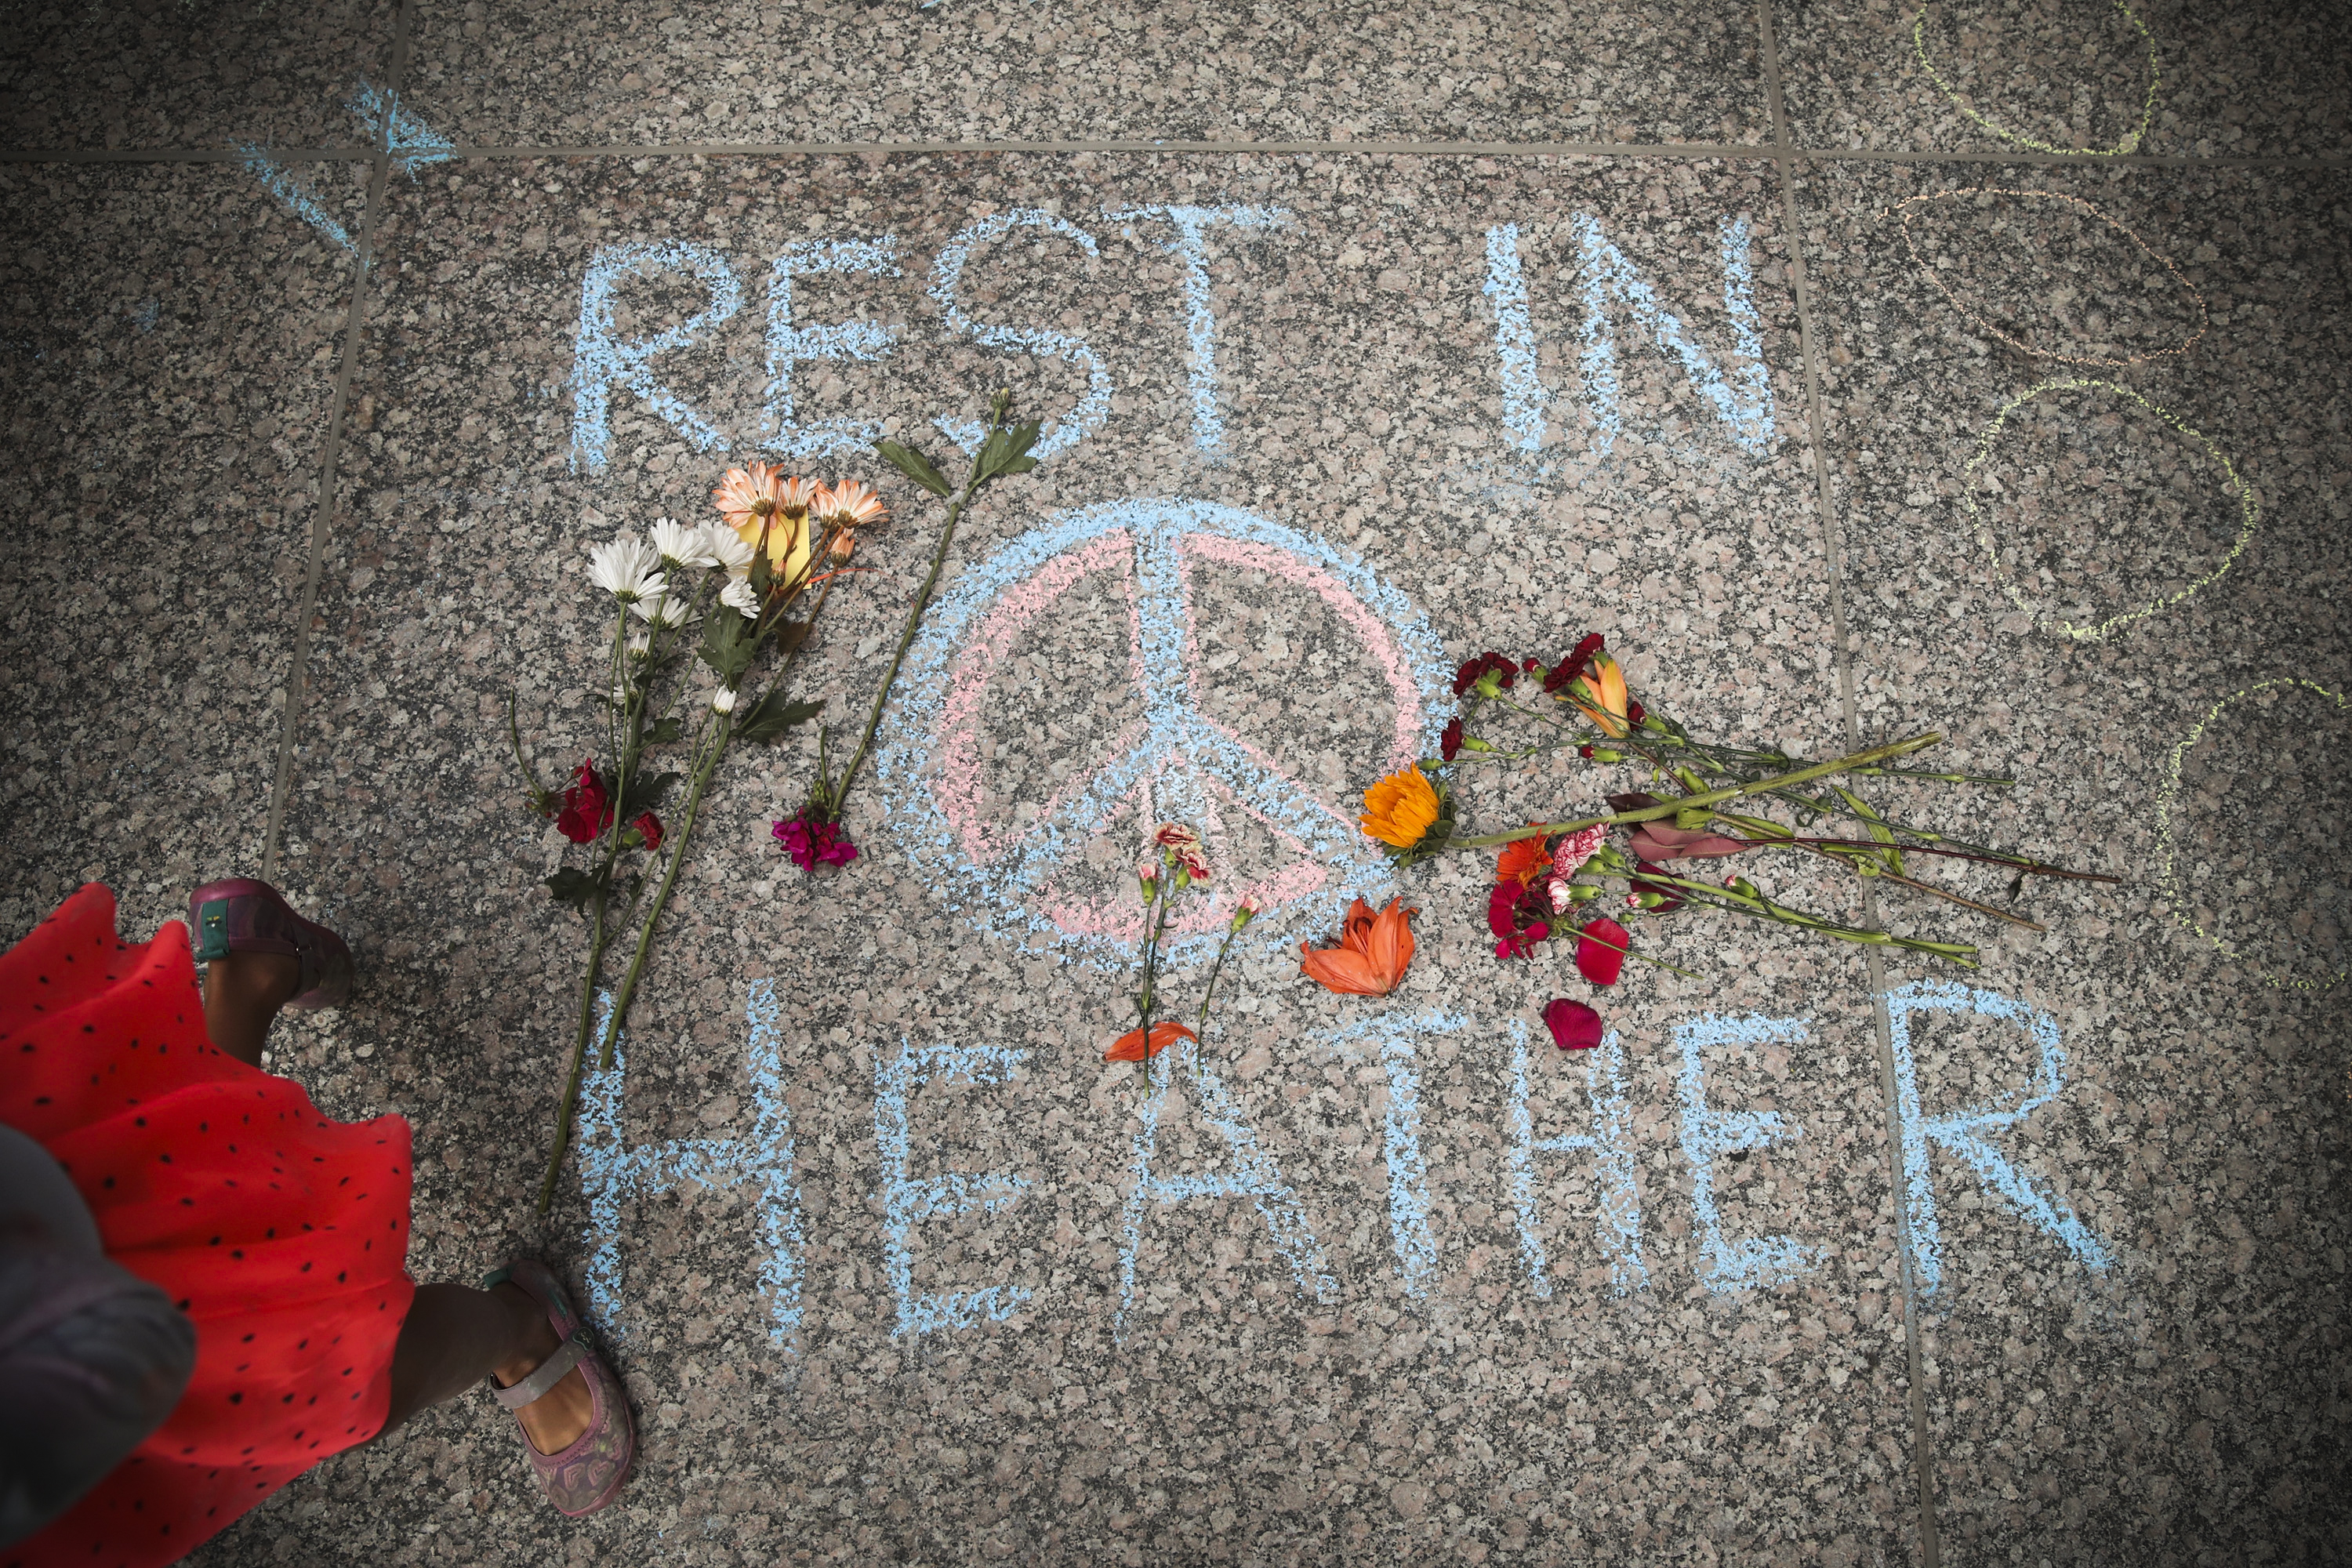 A memorial to Heather Heyer that was chalked on the pavement during a demonstration on August 13, 2017 in Chicago, Illinois.